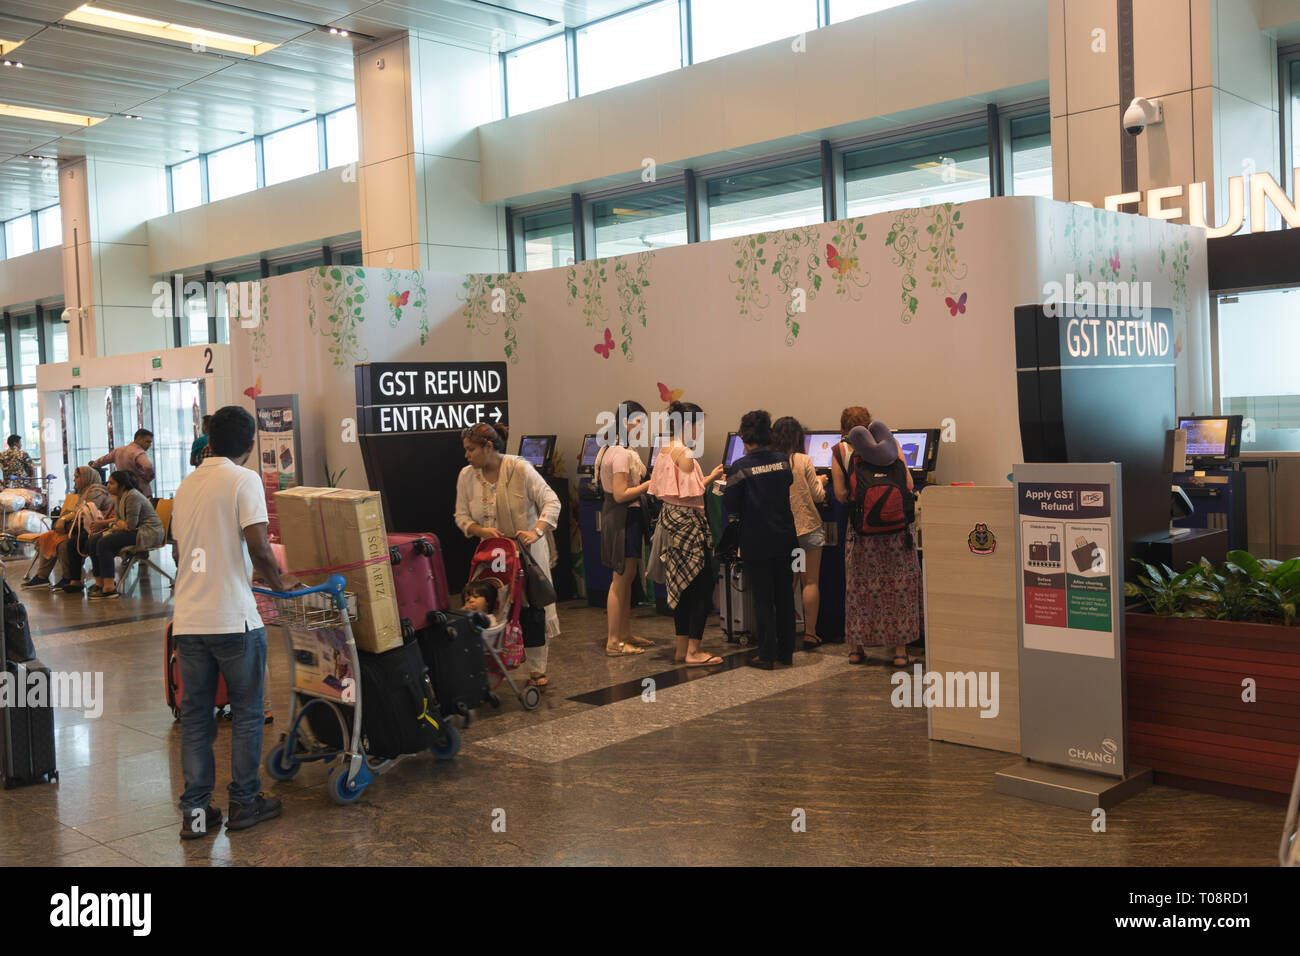 Changi airport in SIngapore - Stock Image